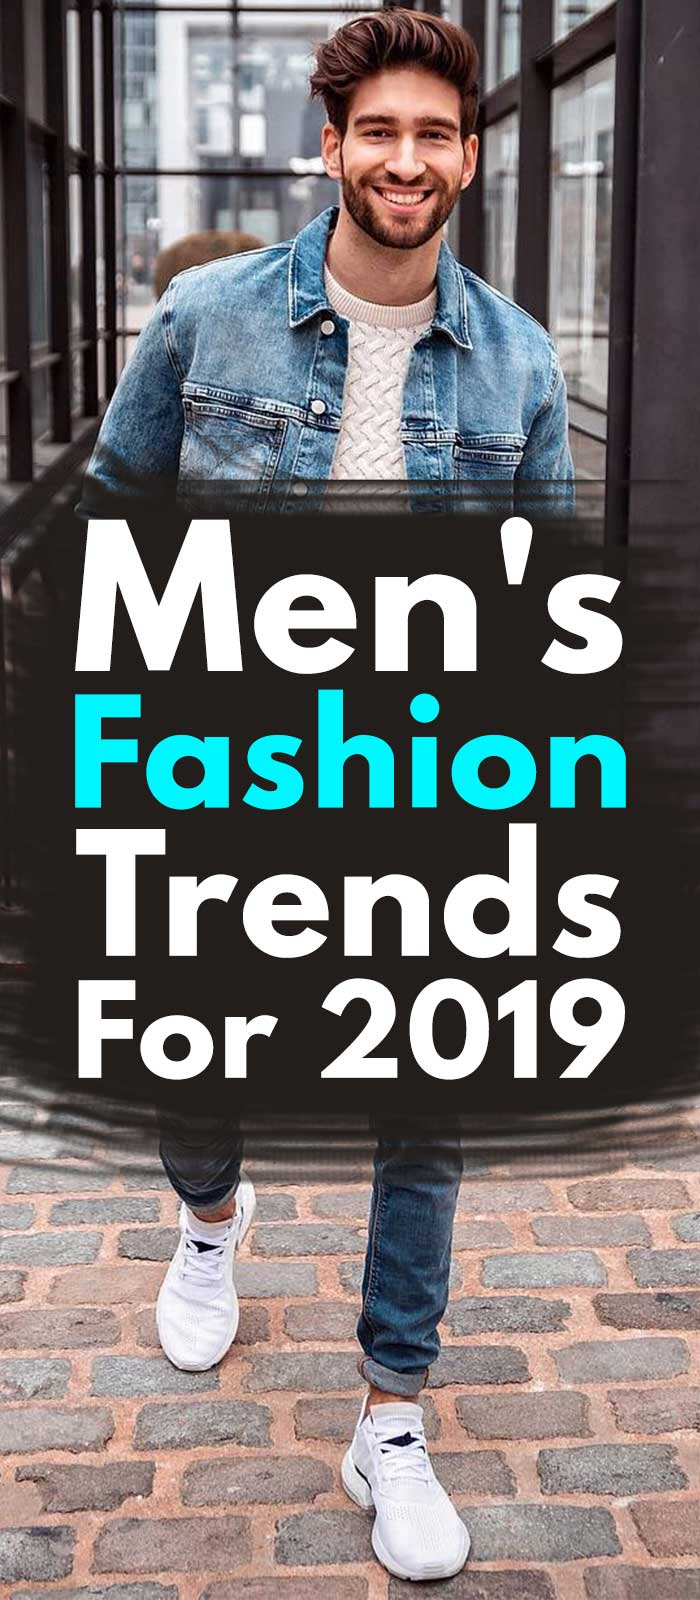 Men's Fashion For 2019